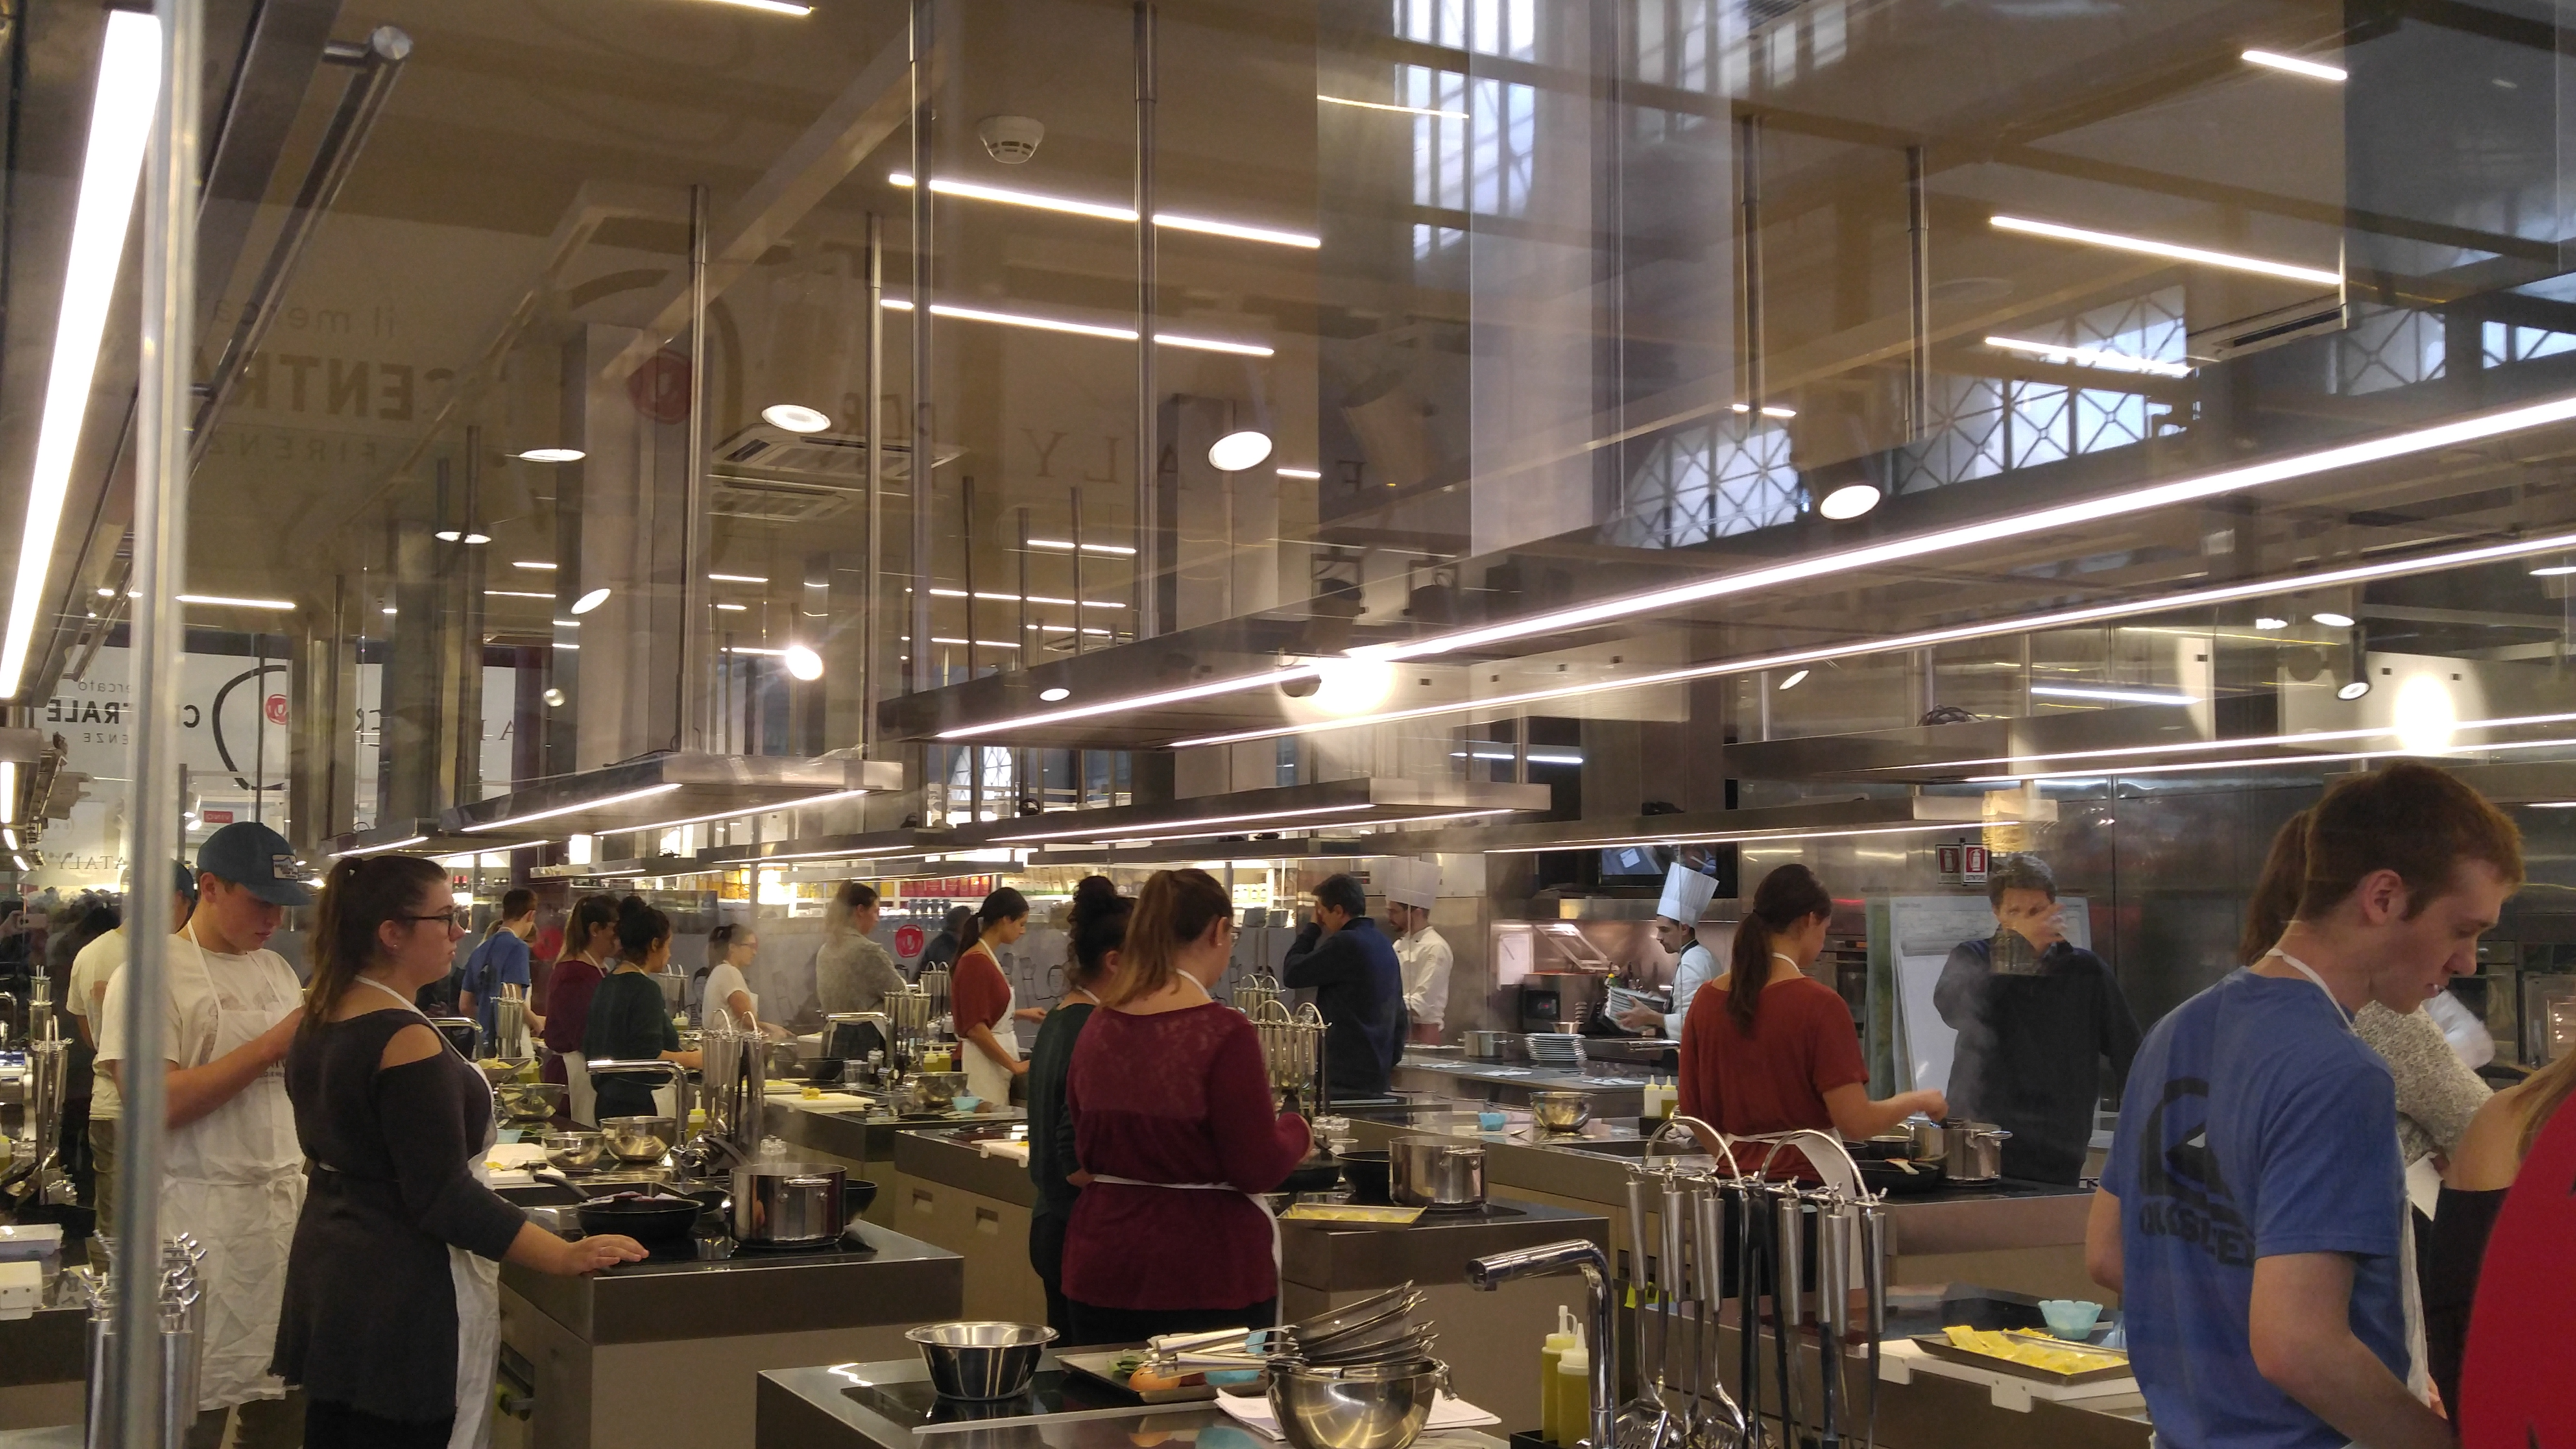 Cucina Lorenzo De Medici A New Approach To Eating The Mercato Centrale In Florence Italy